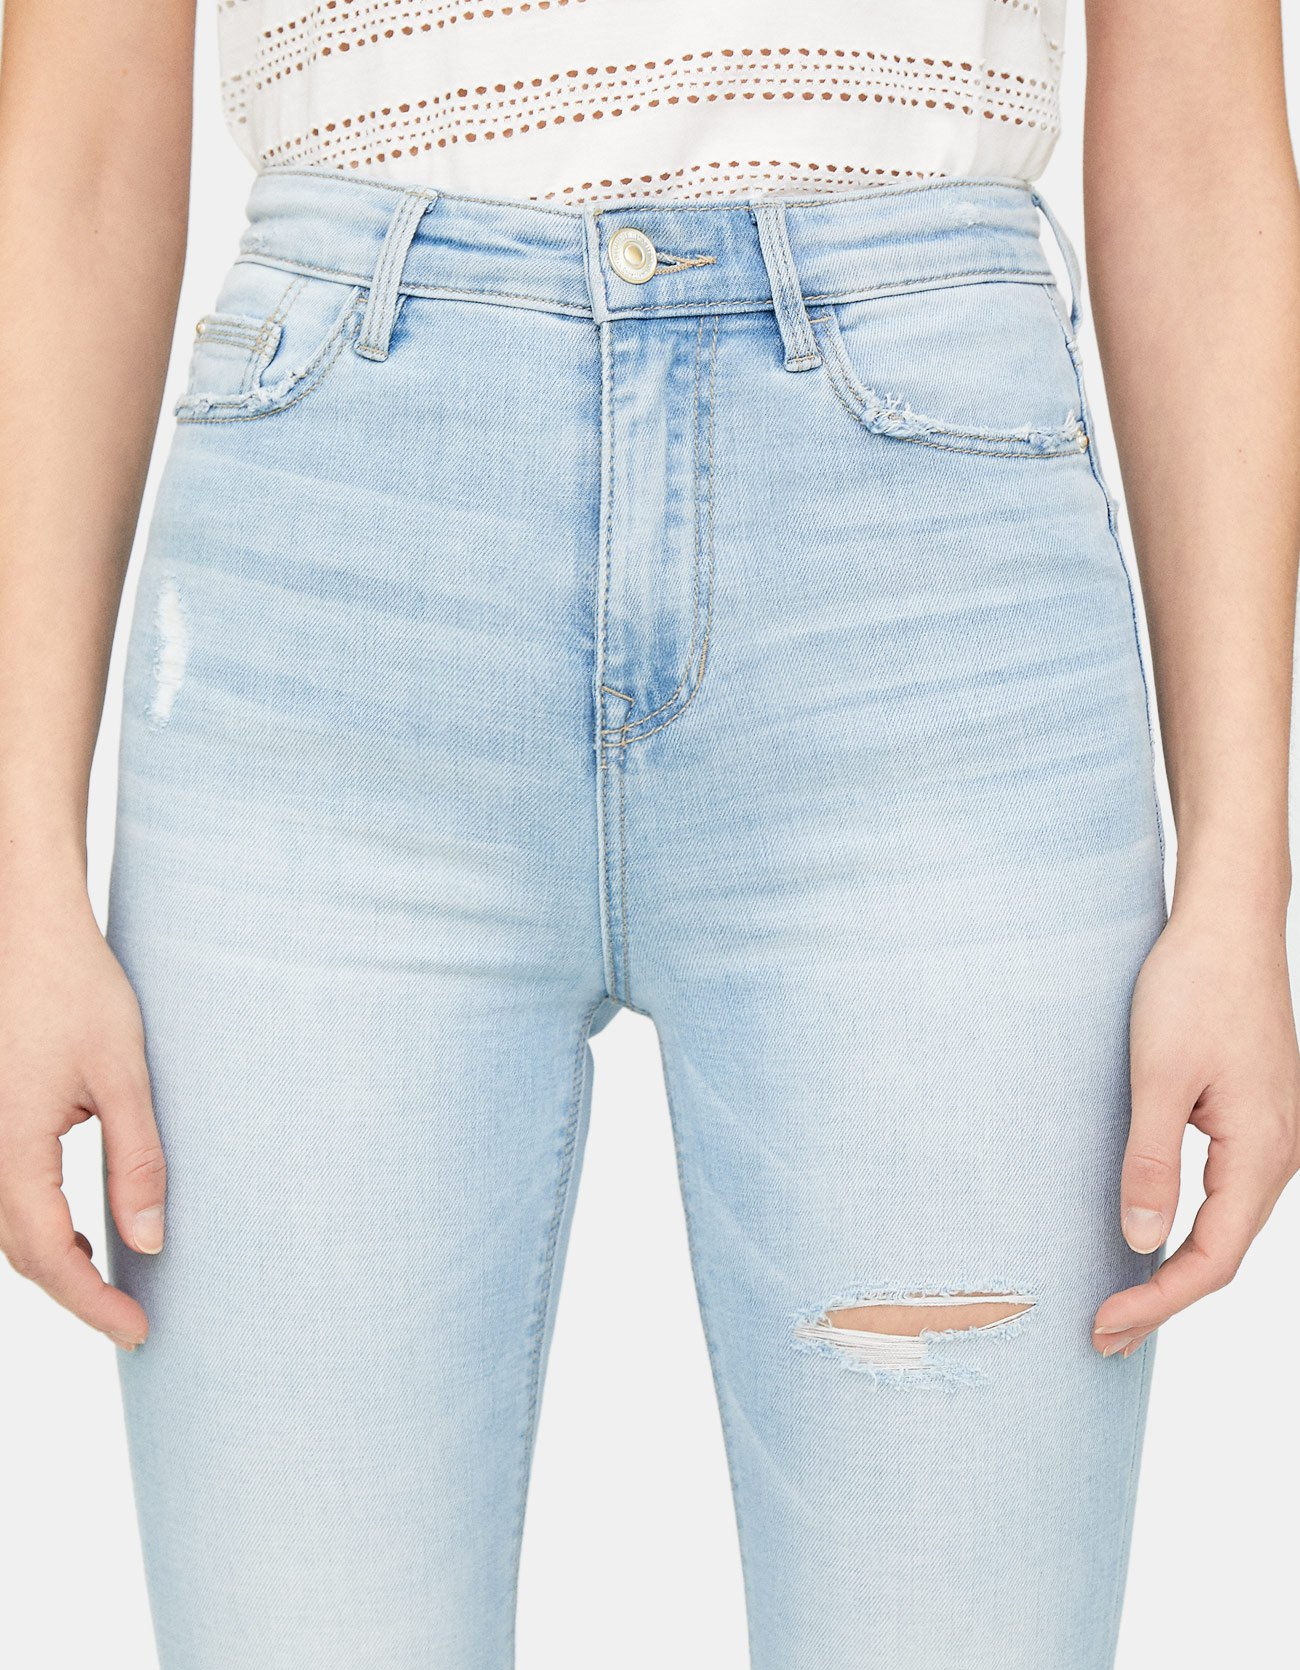 a197ac4ae29e Stradivarius Super High Waisted Skinny Jeans at £19.99   love the brands